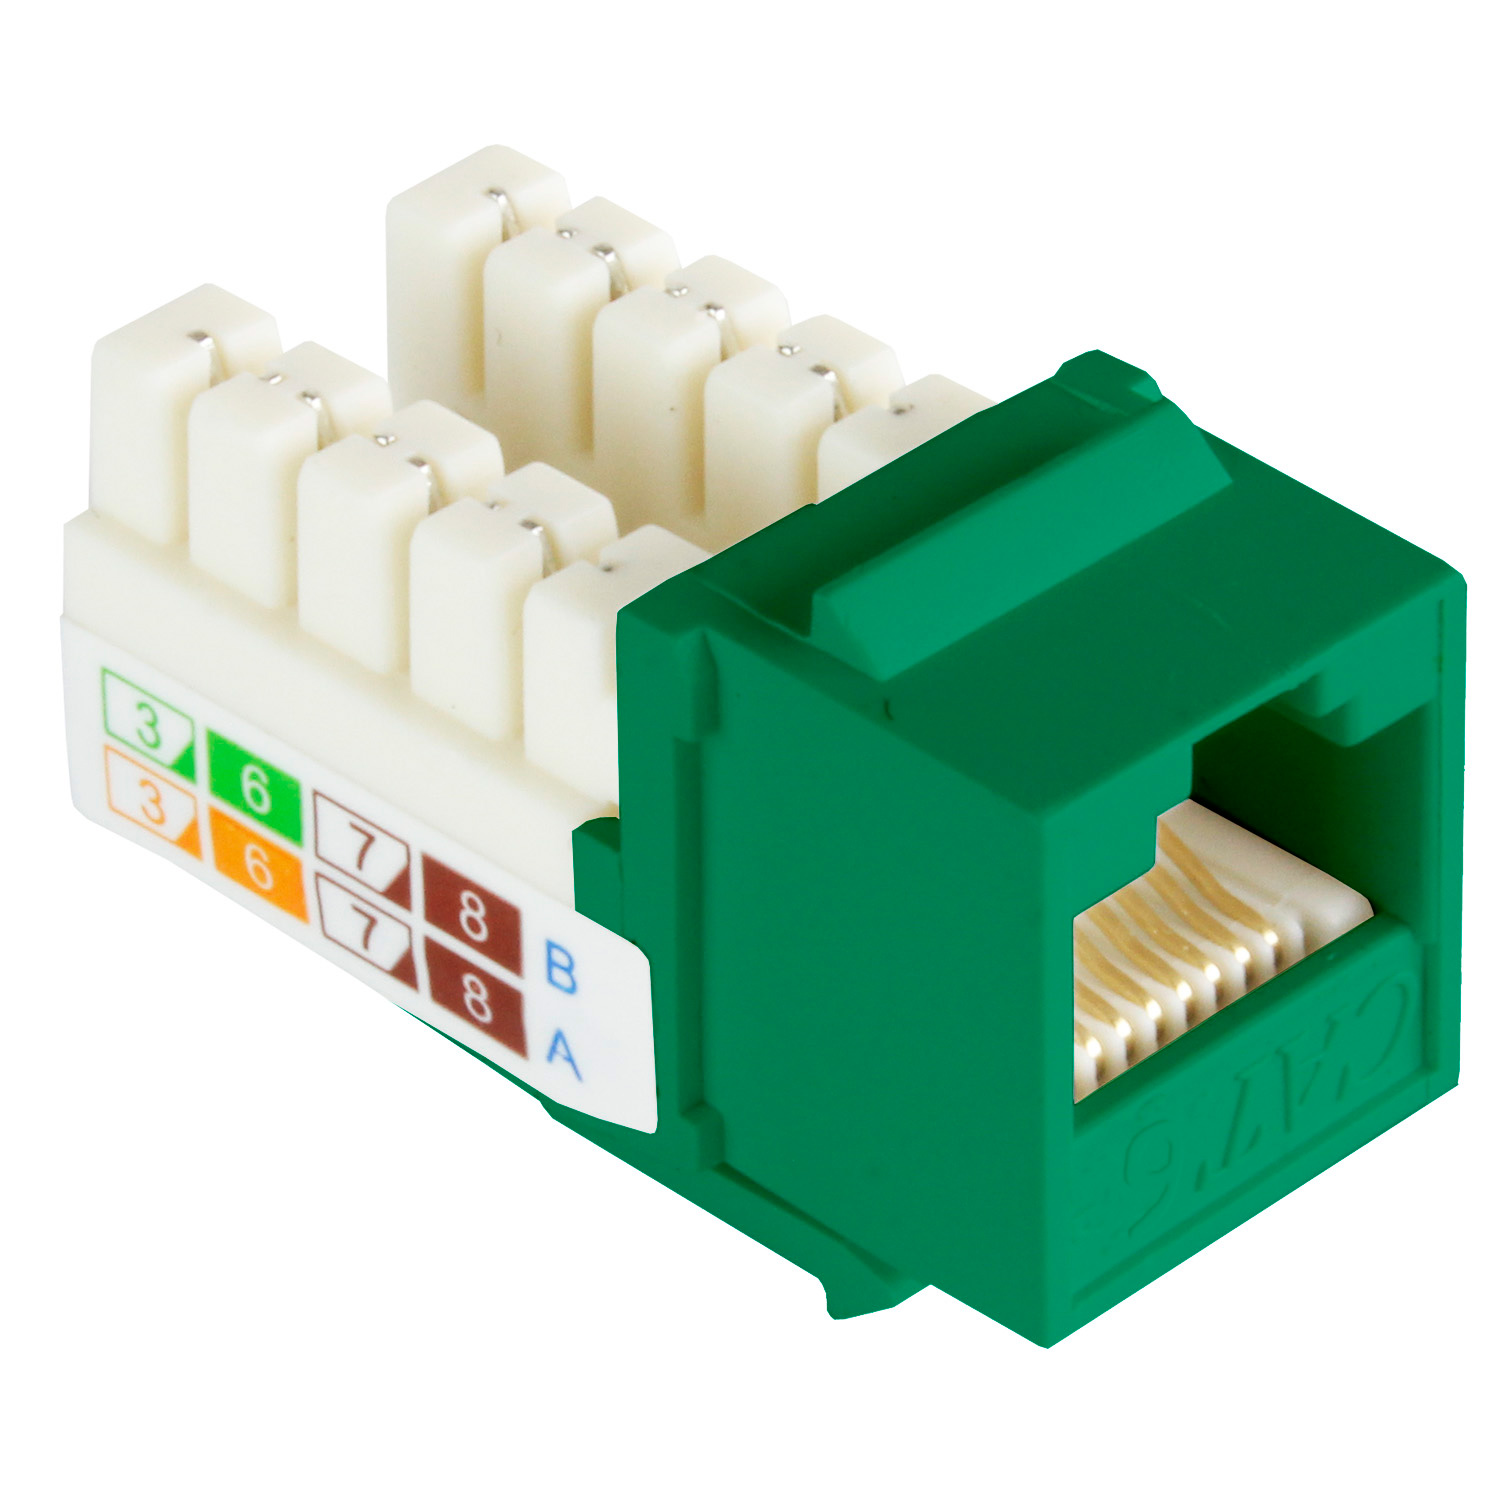 Cat6 Keystone Jack Narrow Type, 110 Punch Down, 90 Degree - Green